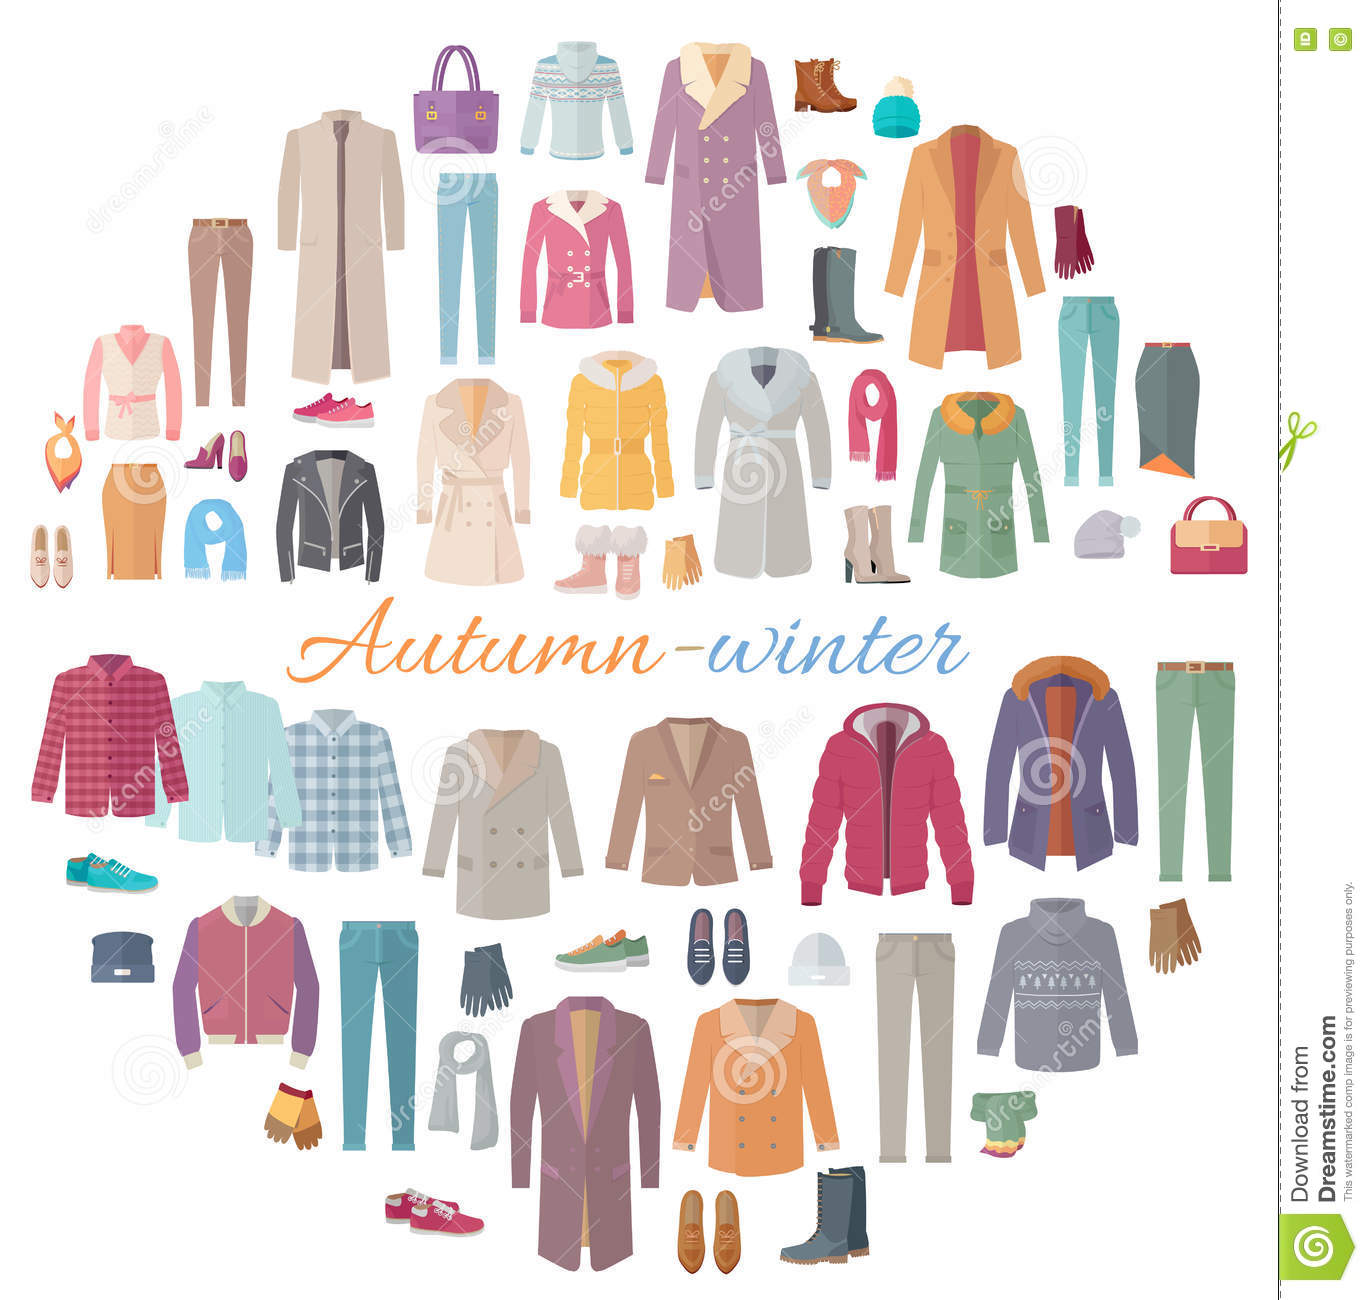 Blouses cartoons illustrations vector stock images 83 pictures to download from - Autumn plowing time all set for winter ...